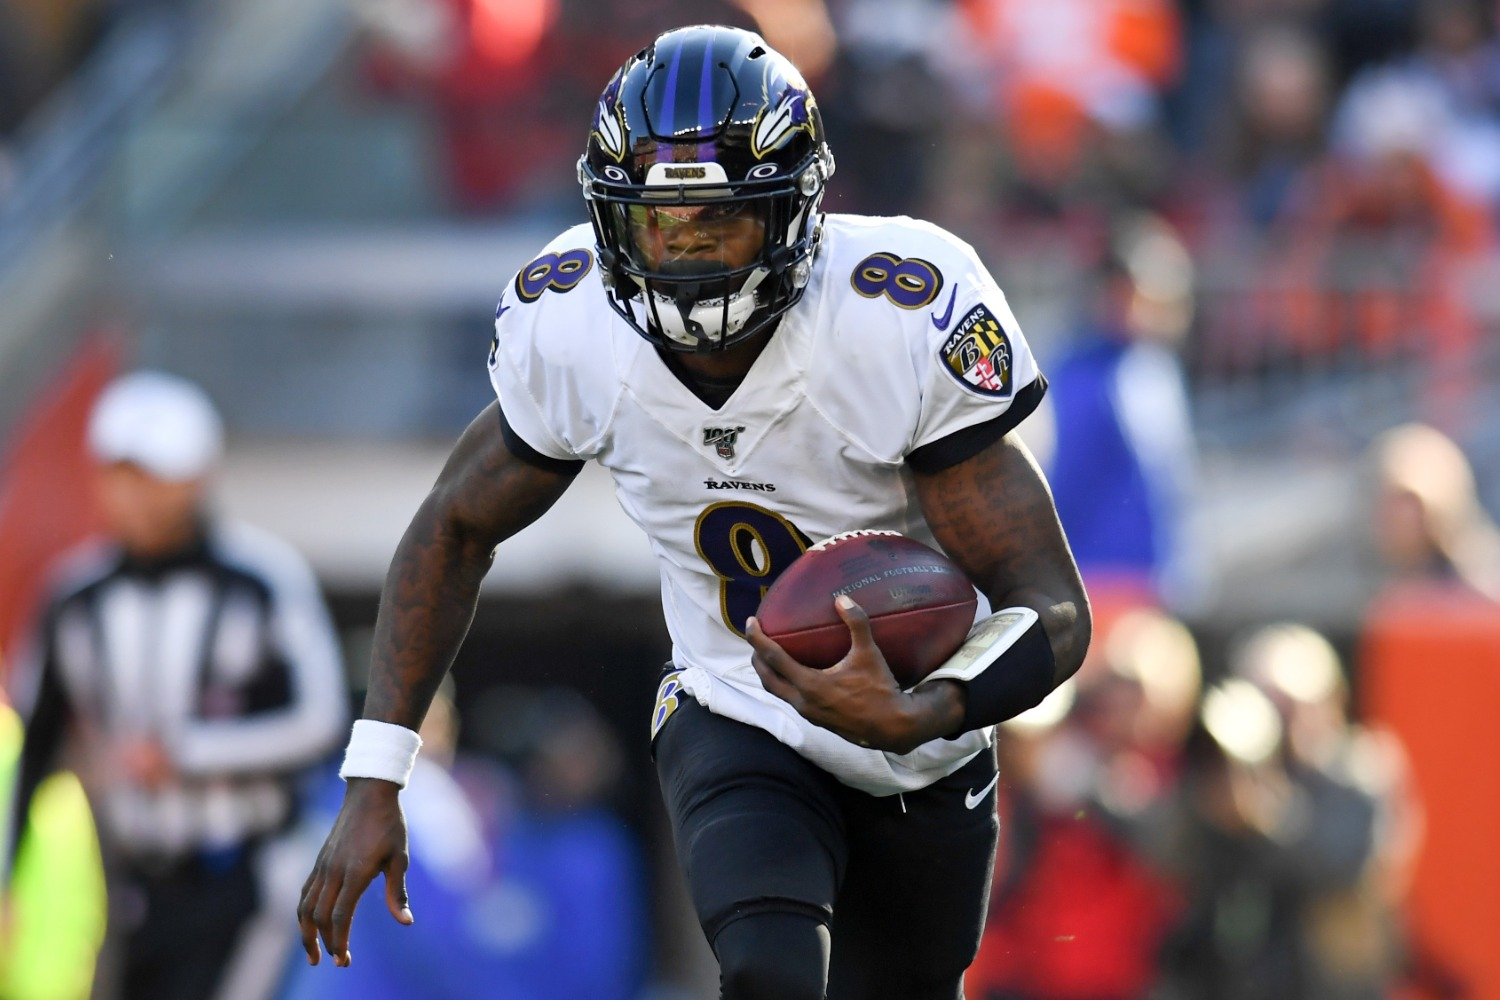 Lamar Jackson and his Ravens teammates must pass a brutal conditioning test consisting of 900 yards of sprints.